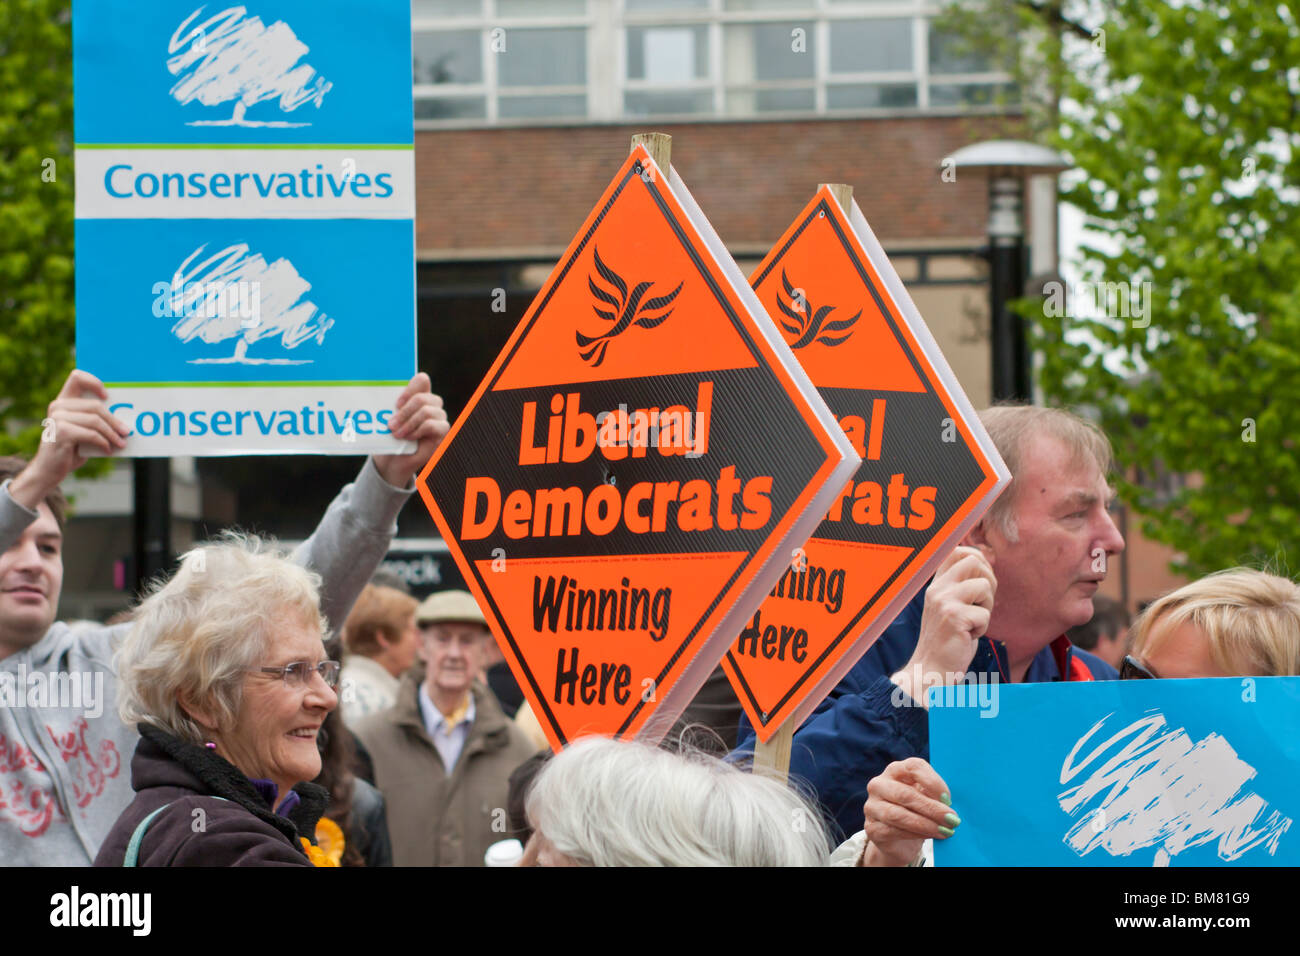 Conservative and Liberal Democrat supporters at an election rally in St Albans - Stock Image